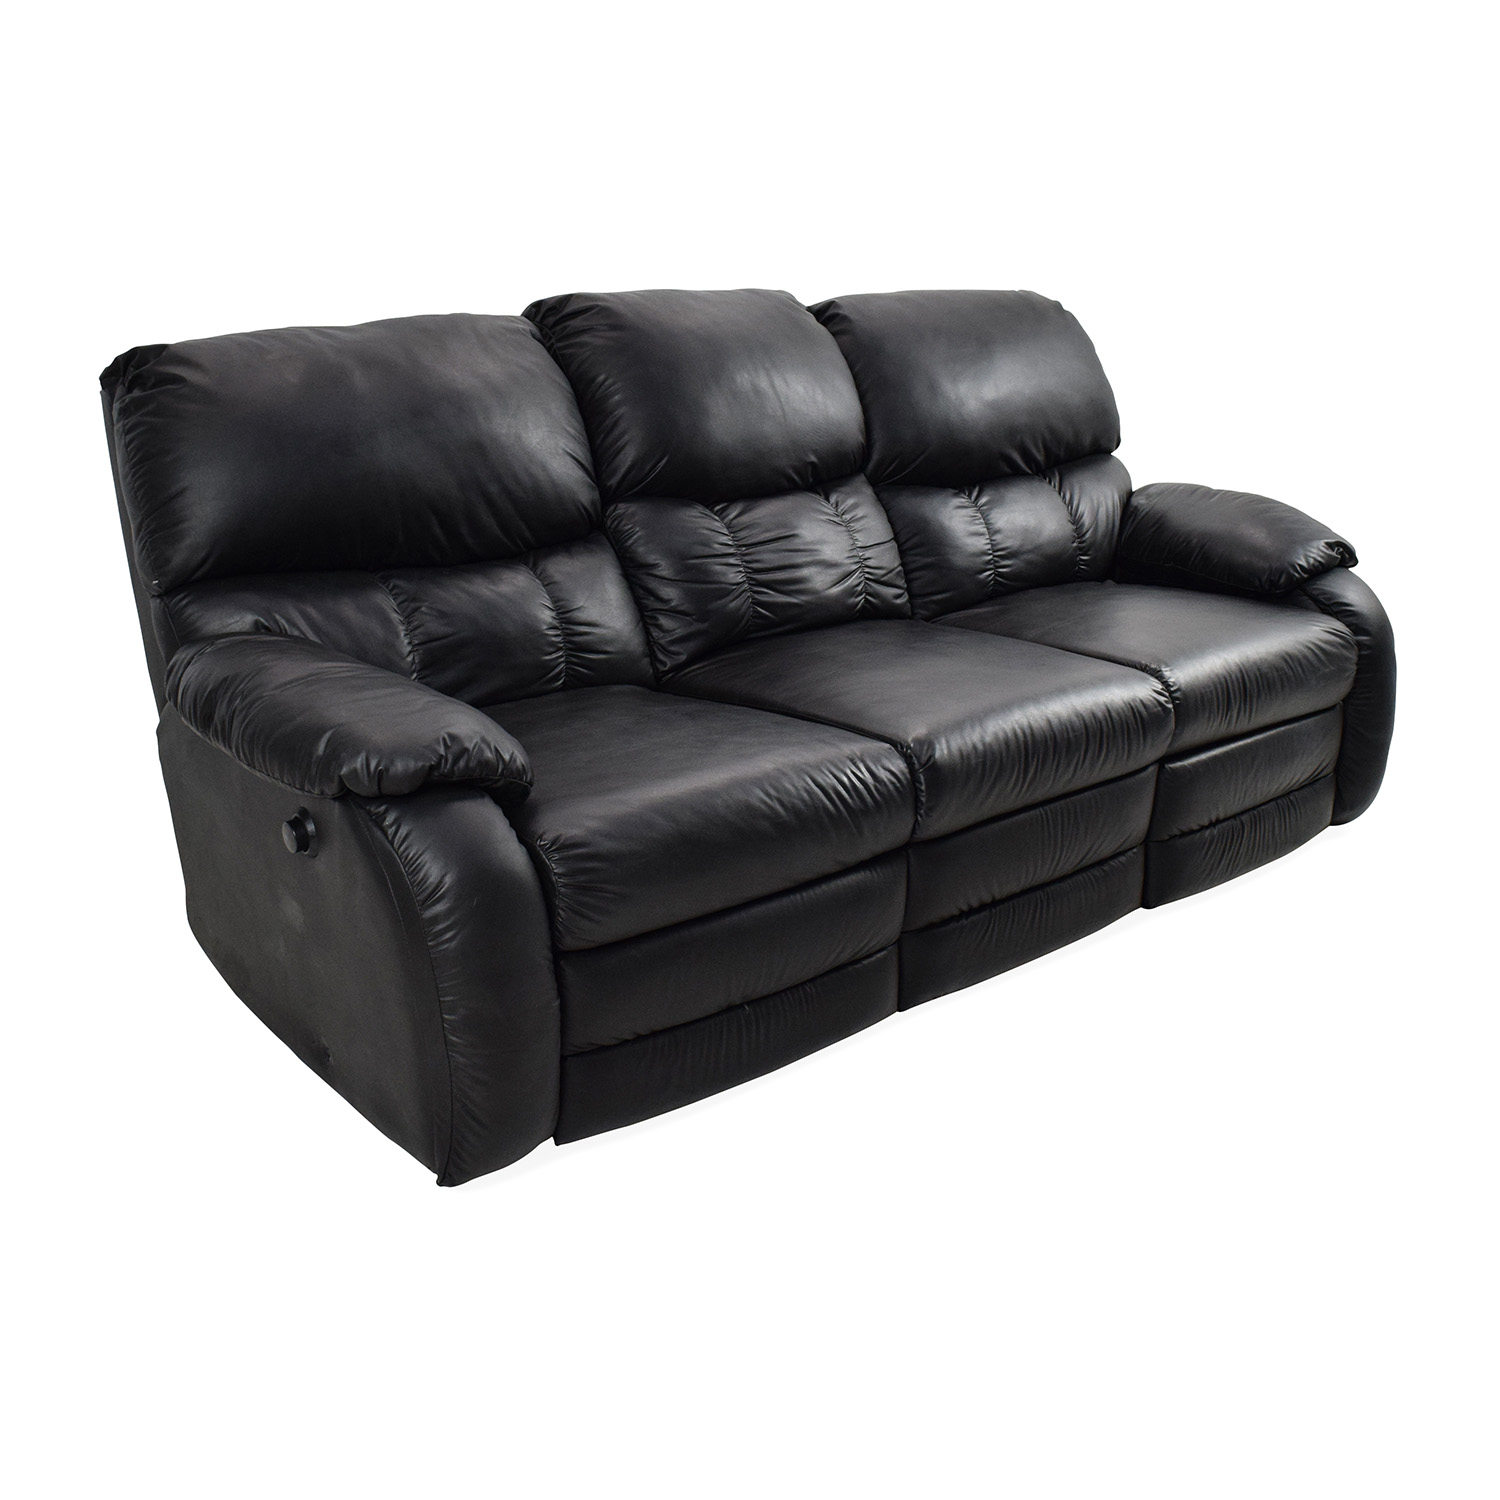 Black Leather Recliner View Larger Awesome Modern Recliner Chair Modern Black Leather Recliner